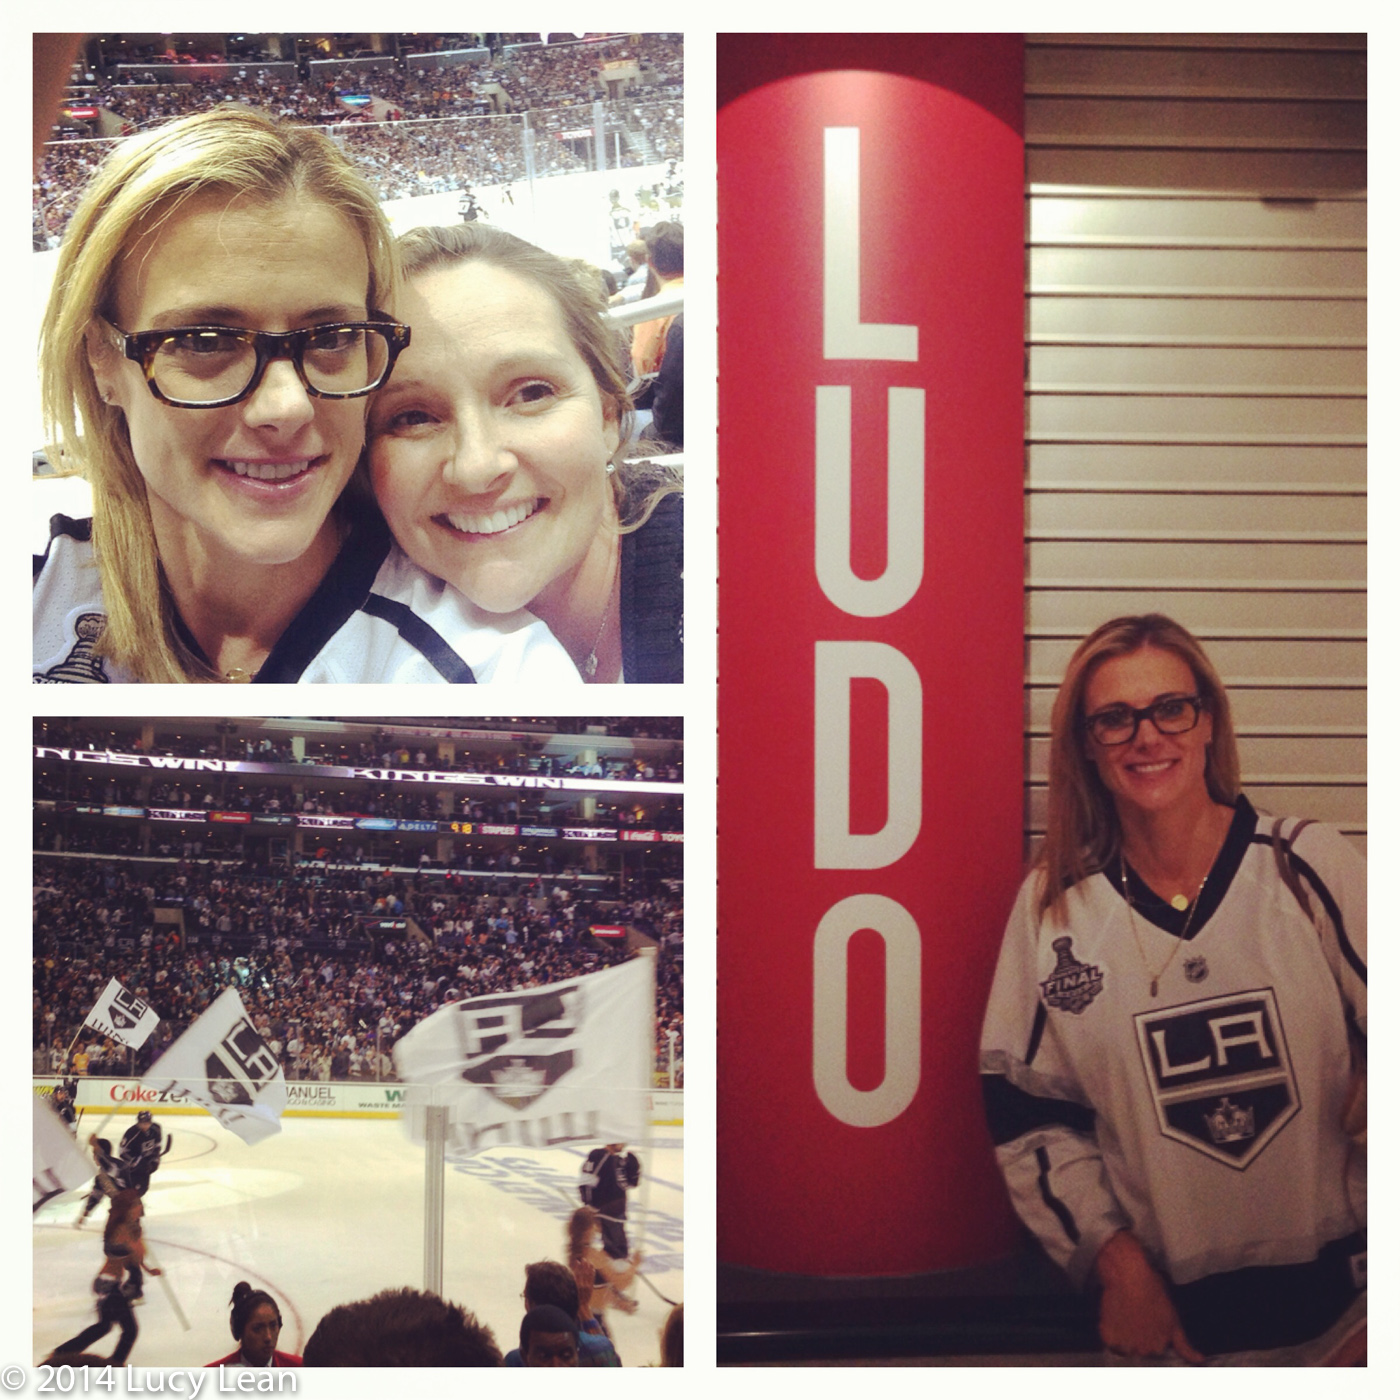 Krissy Lefebvre and Lucy Lean at Staples Center for LA Kings game